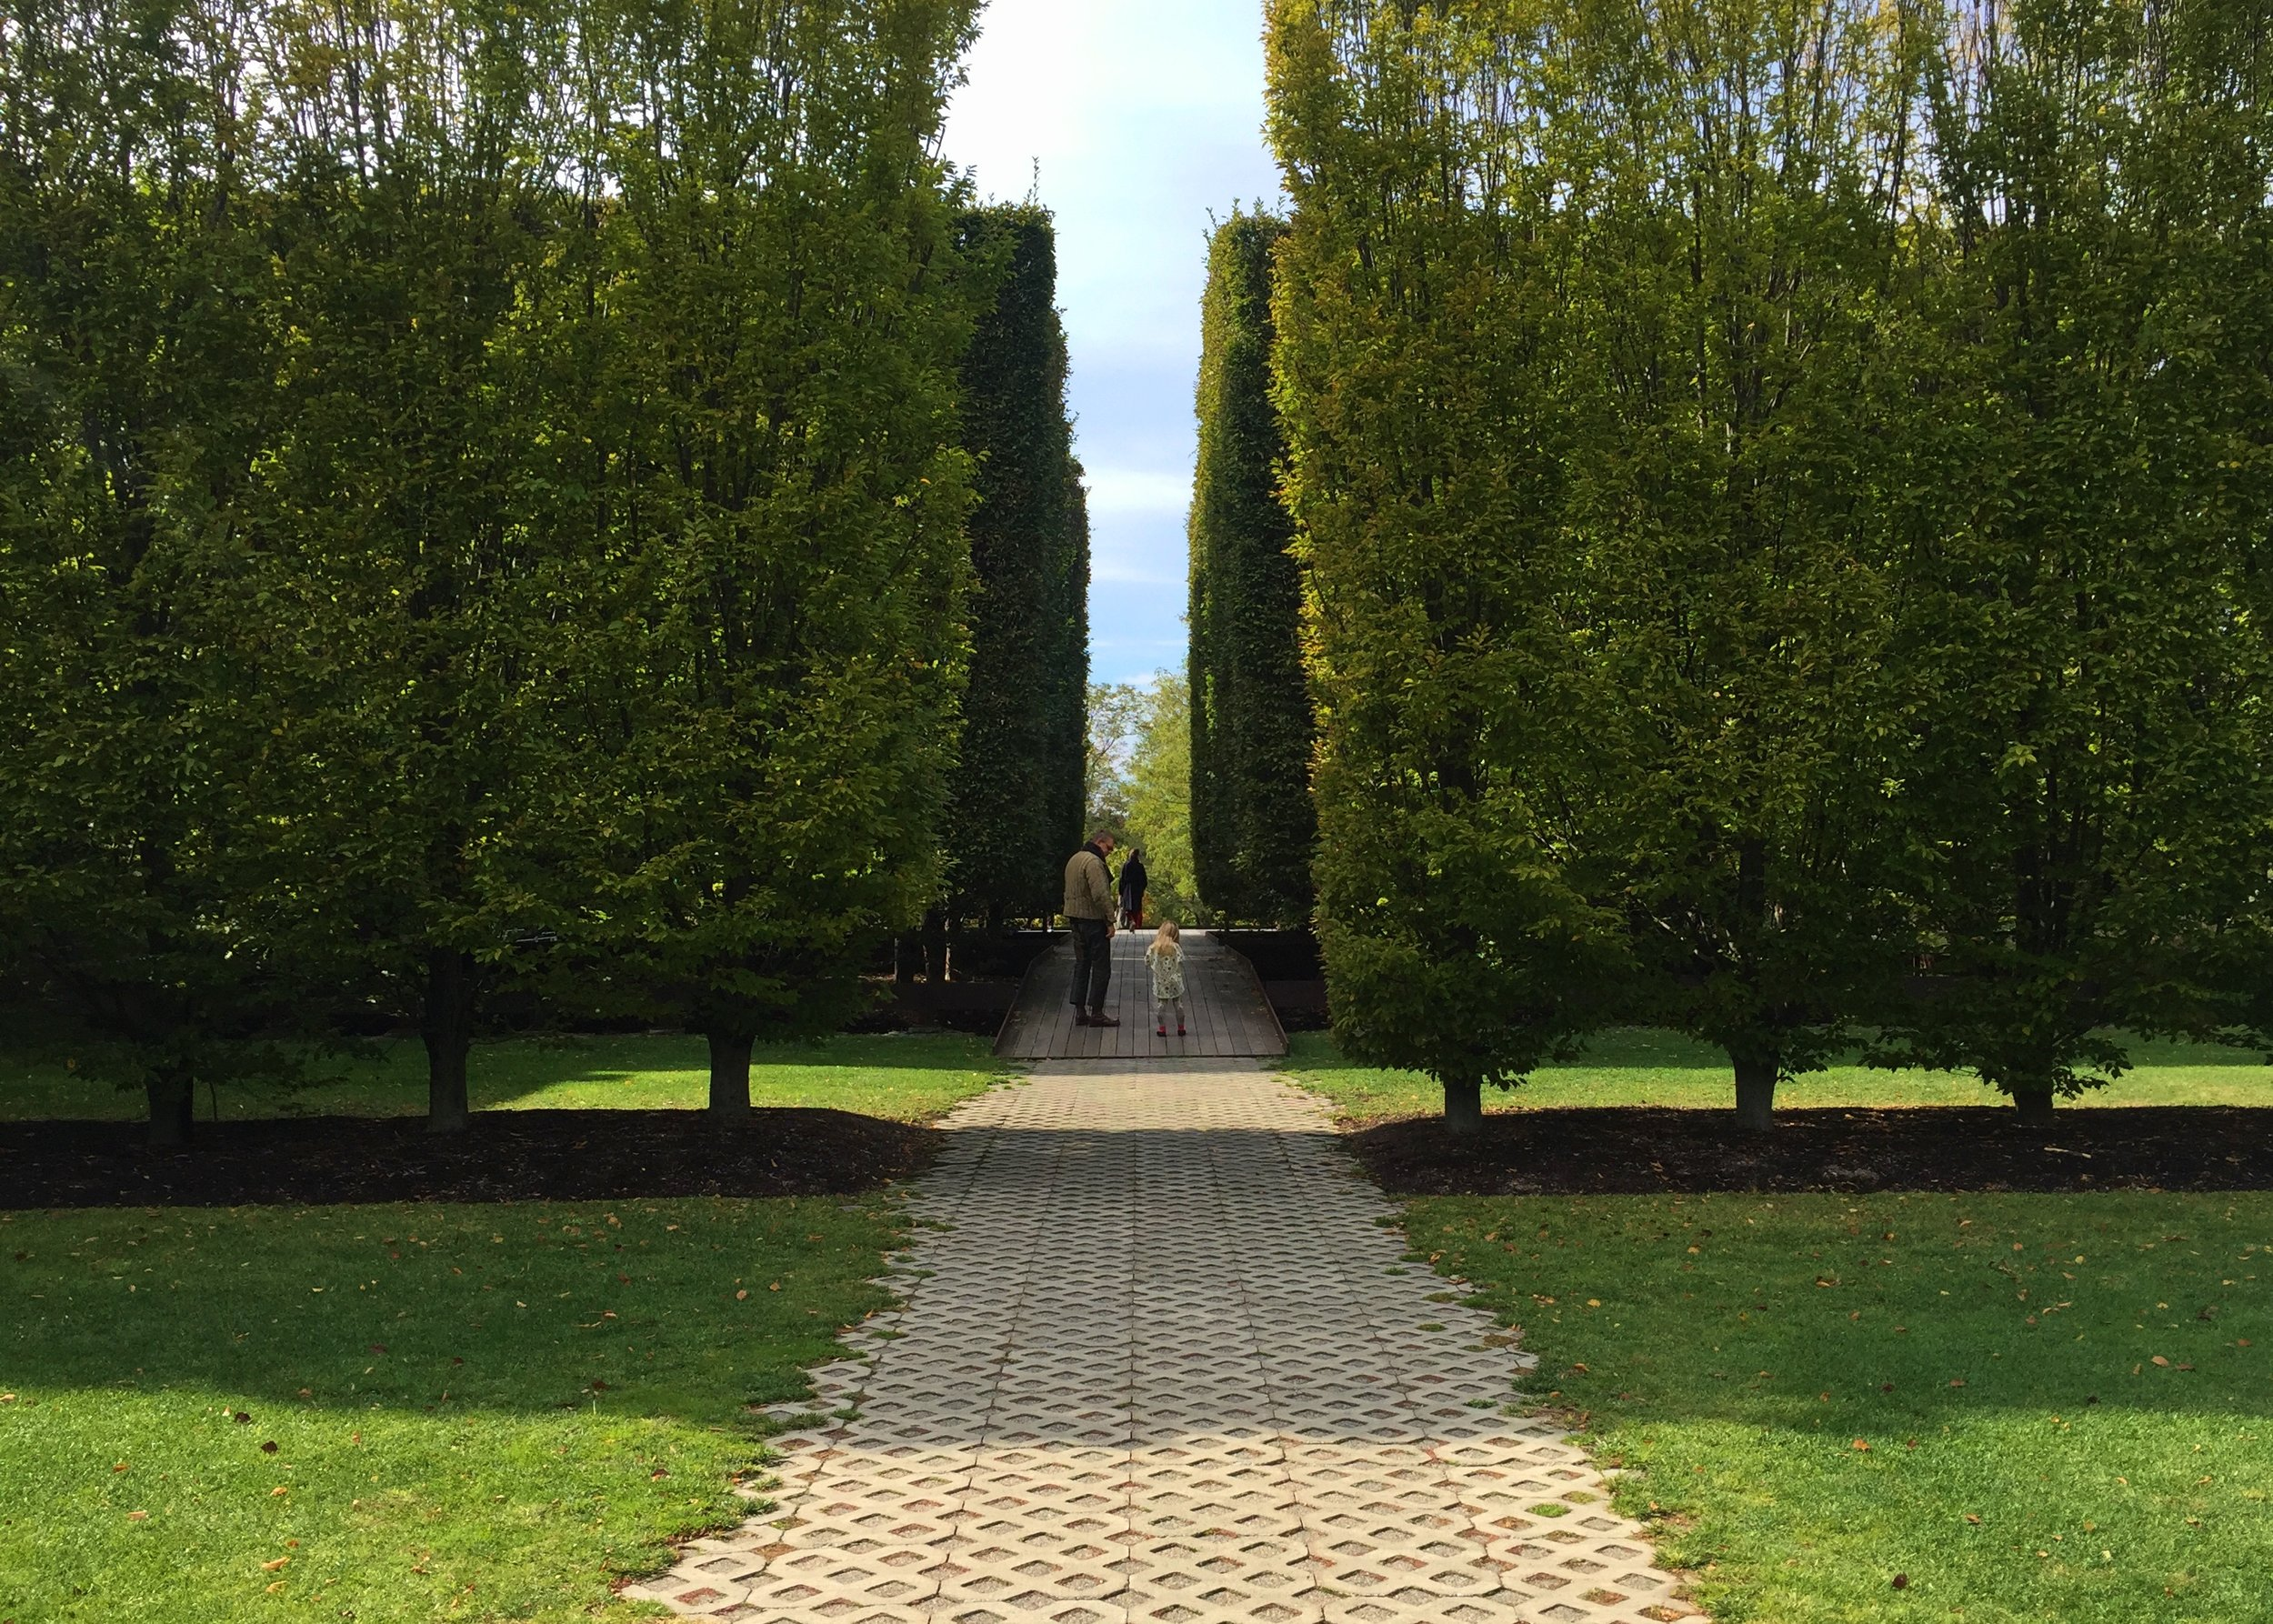 Robert Irwin's garden entrance to Dia:Beacon—a quaint nod to the manicured lawns in Paris, don't you think?